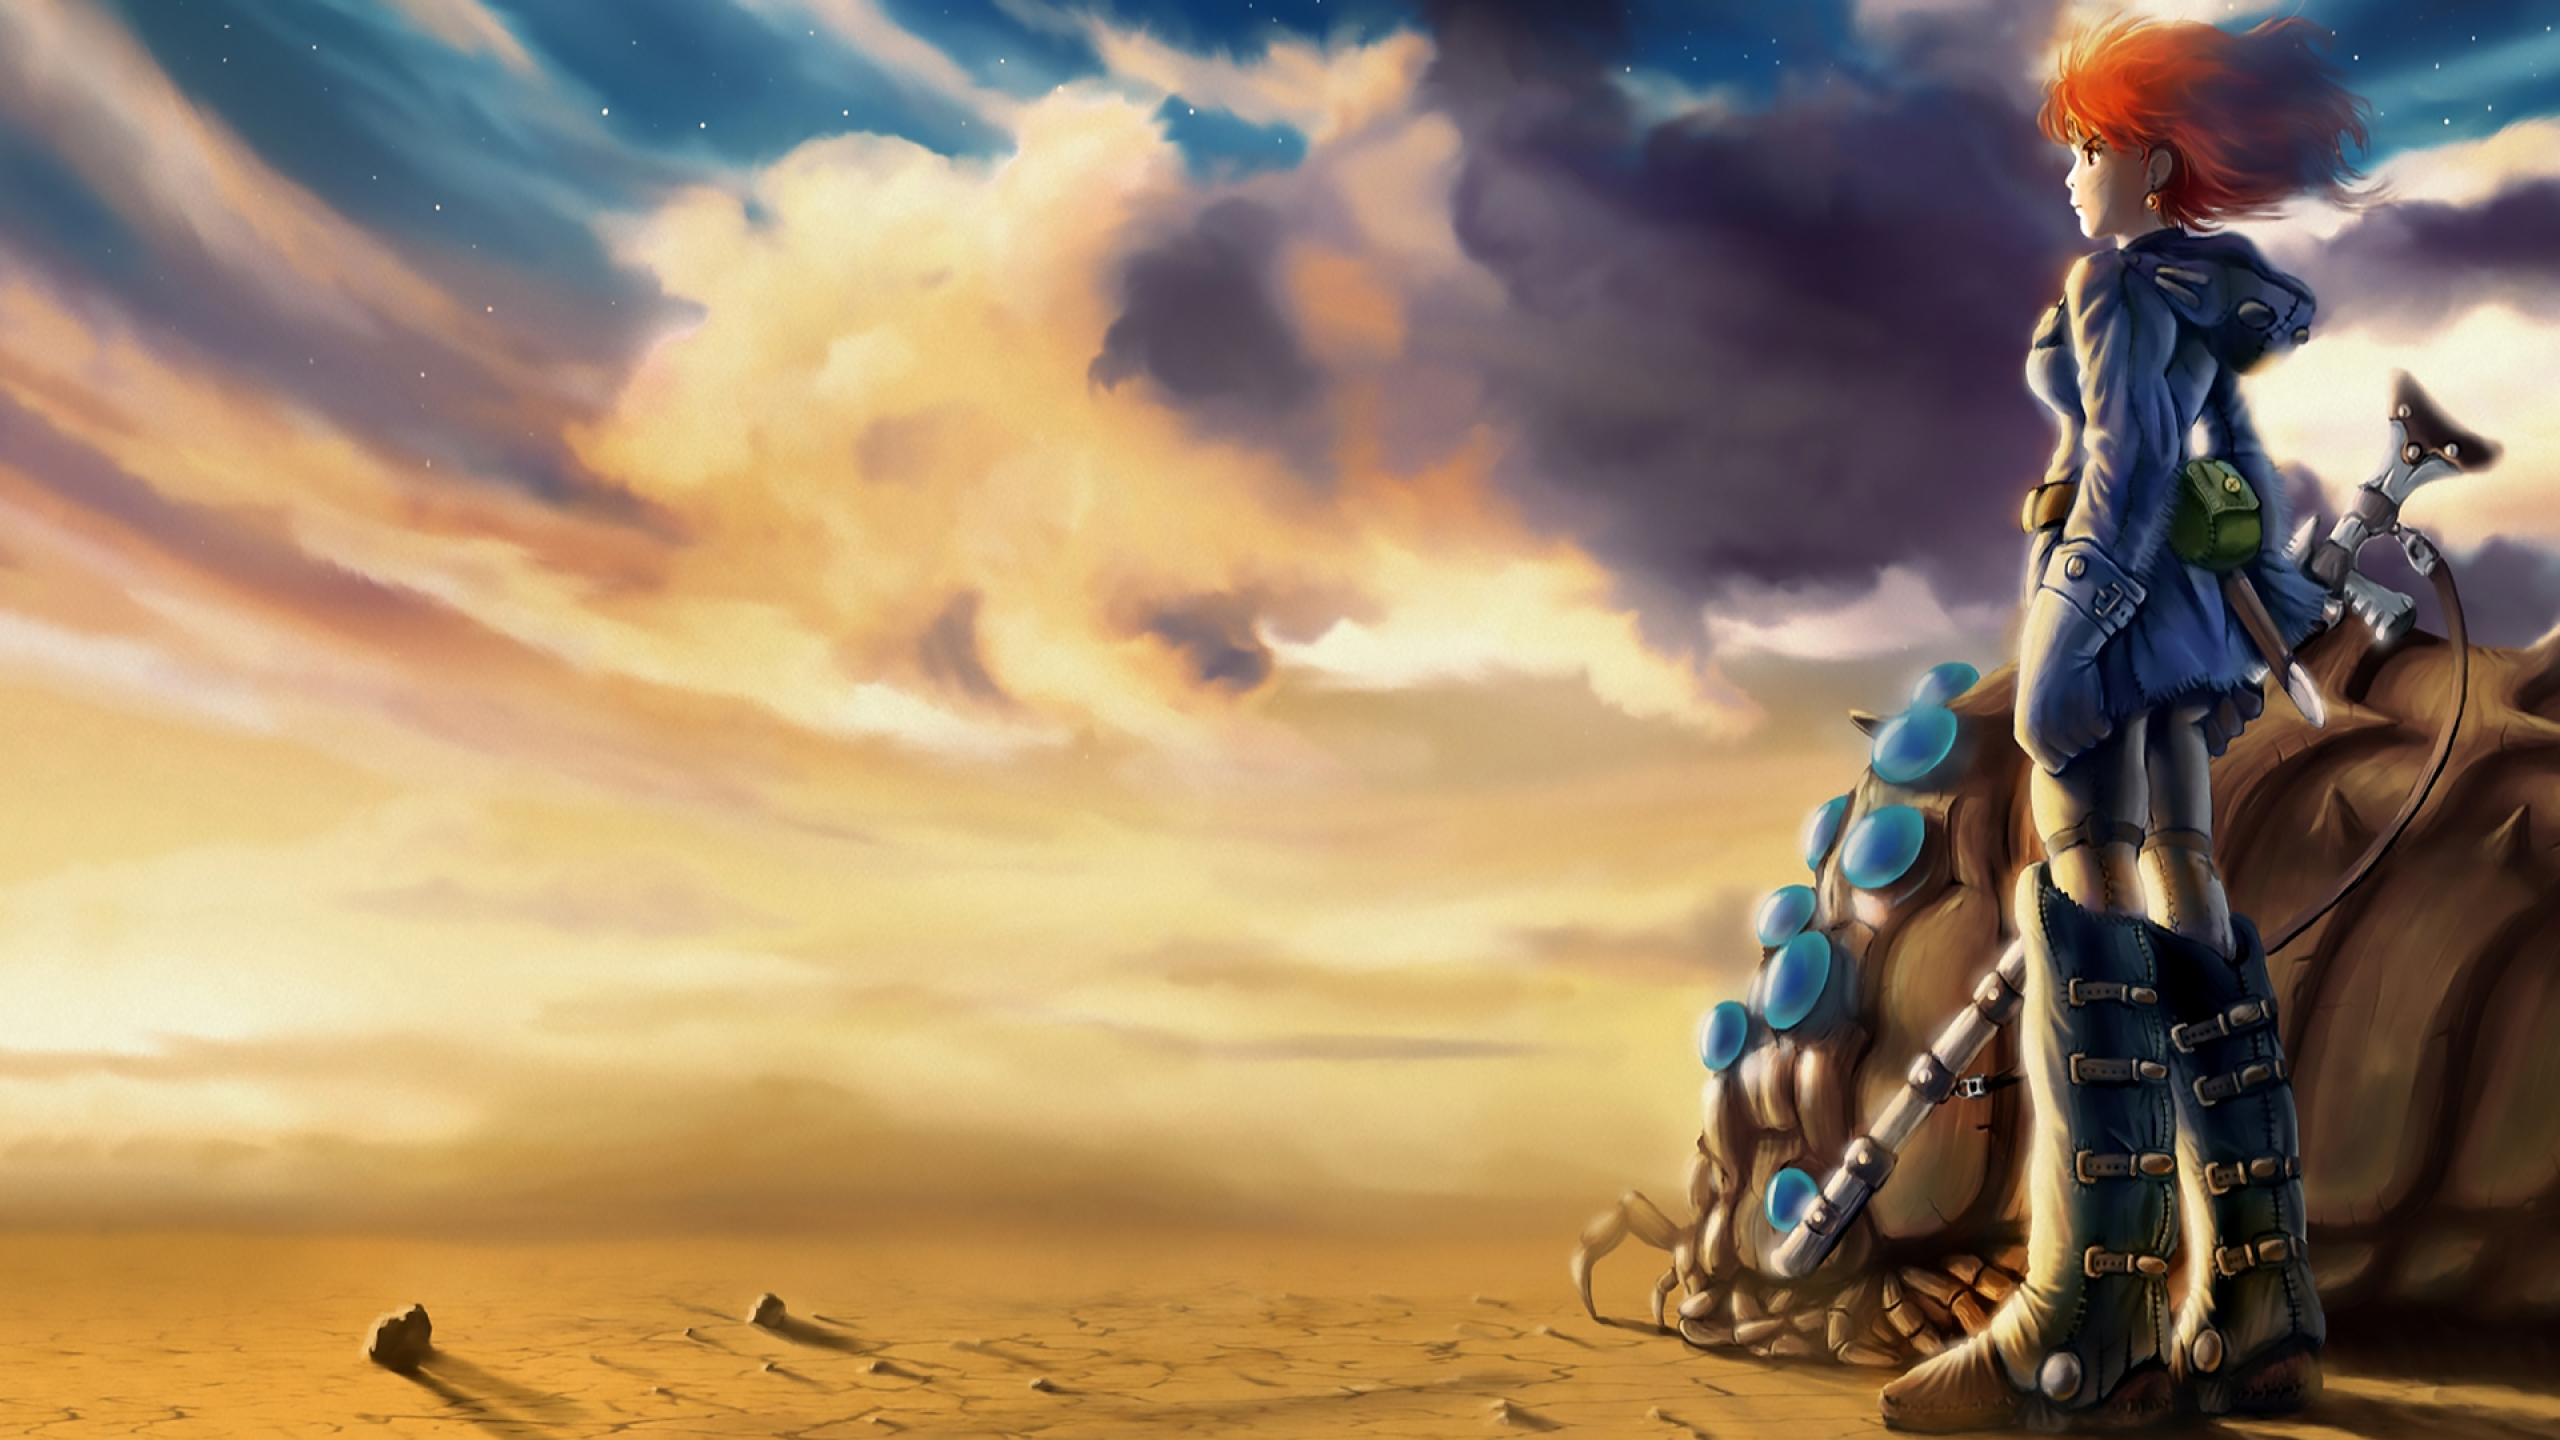 2560x1440 Nausicaa Of The Valley Of The Wind Nausicaa Desert